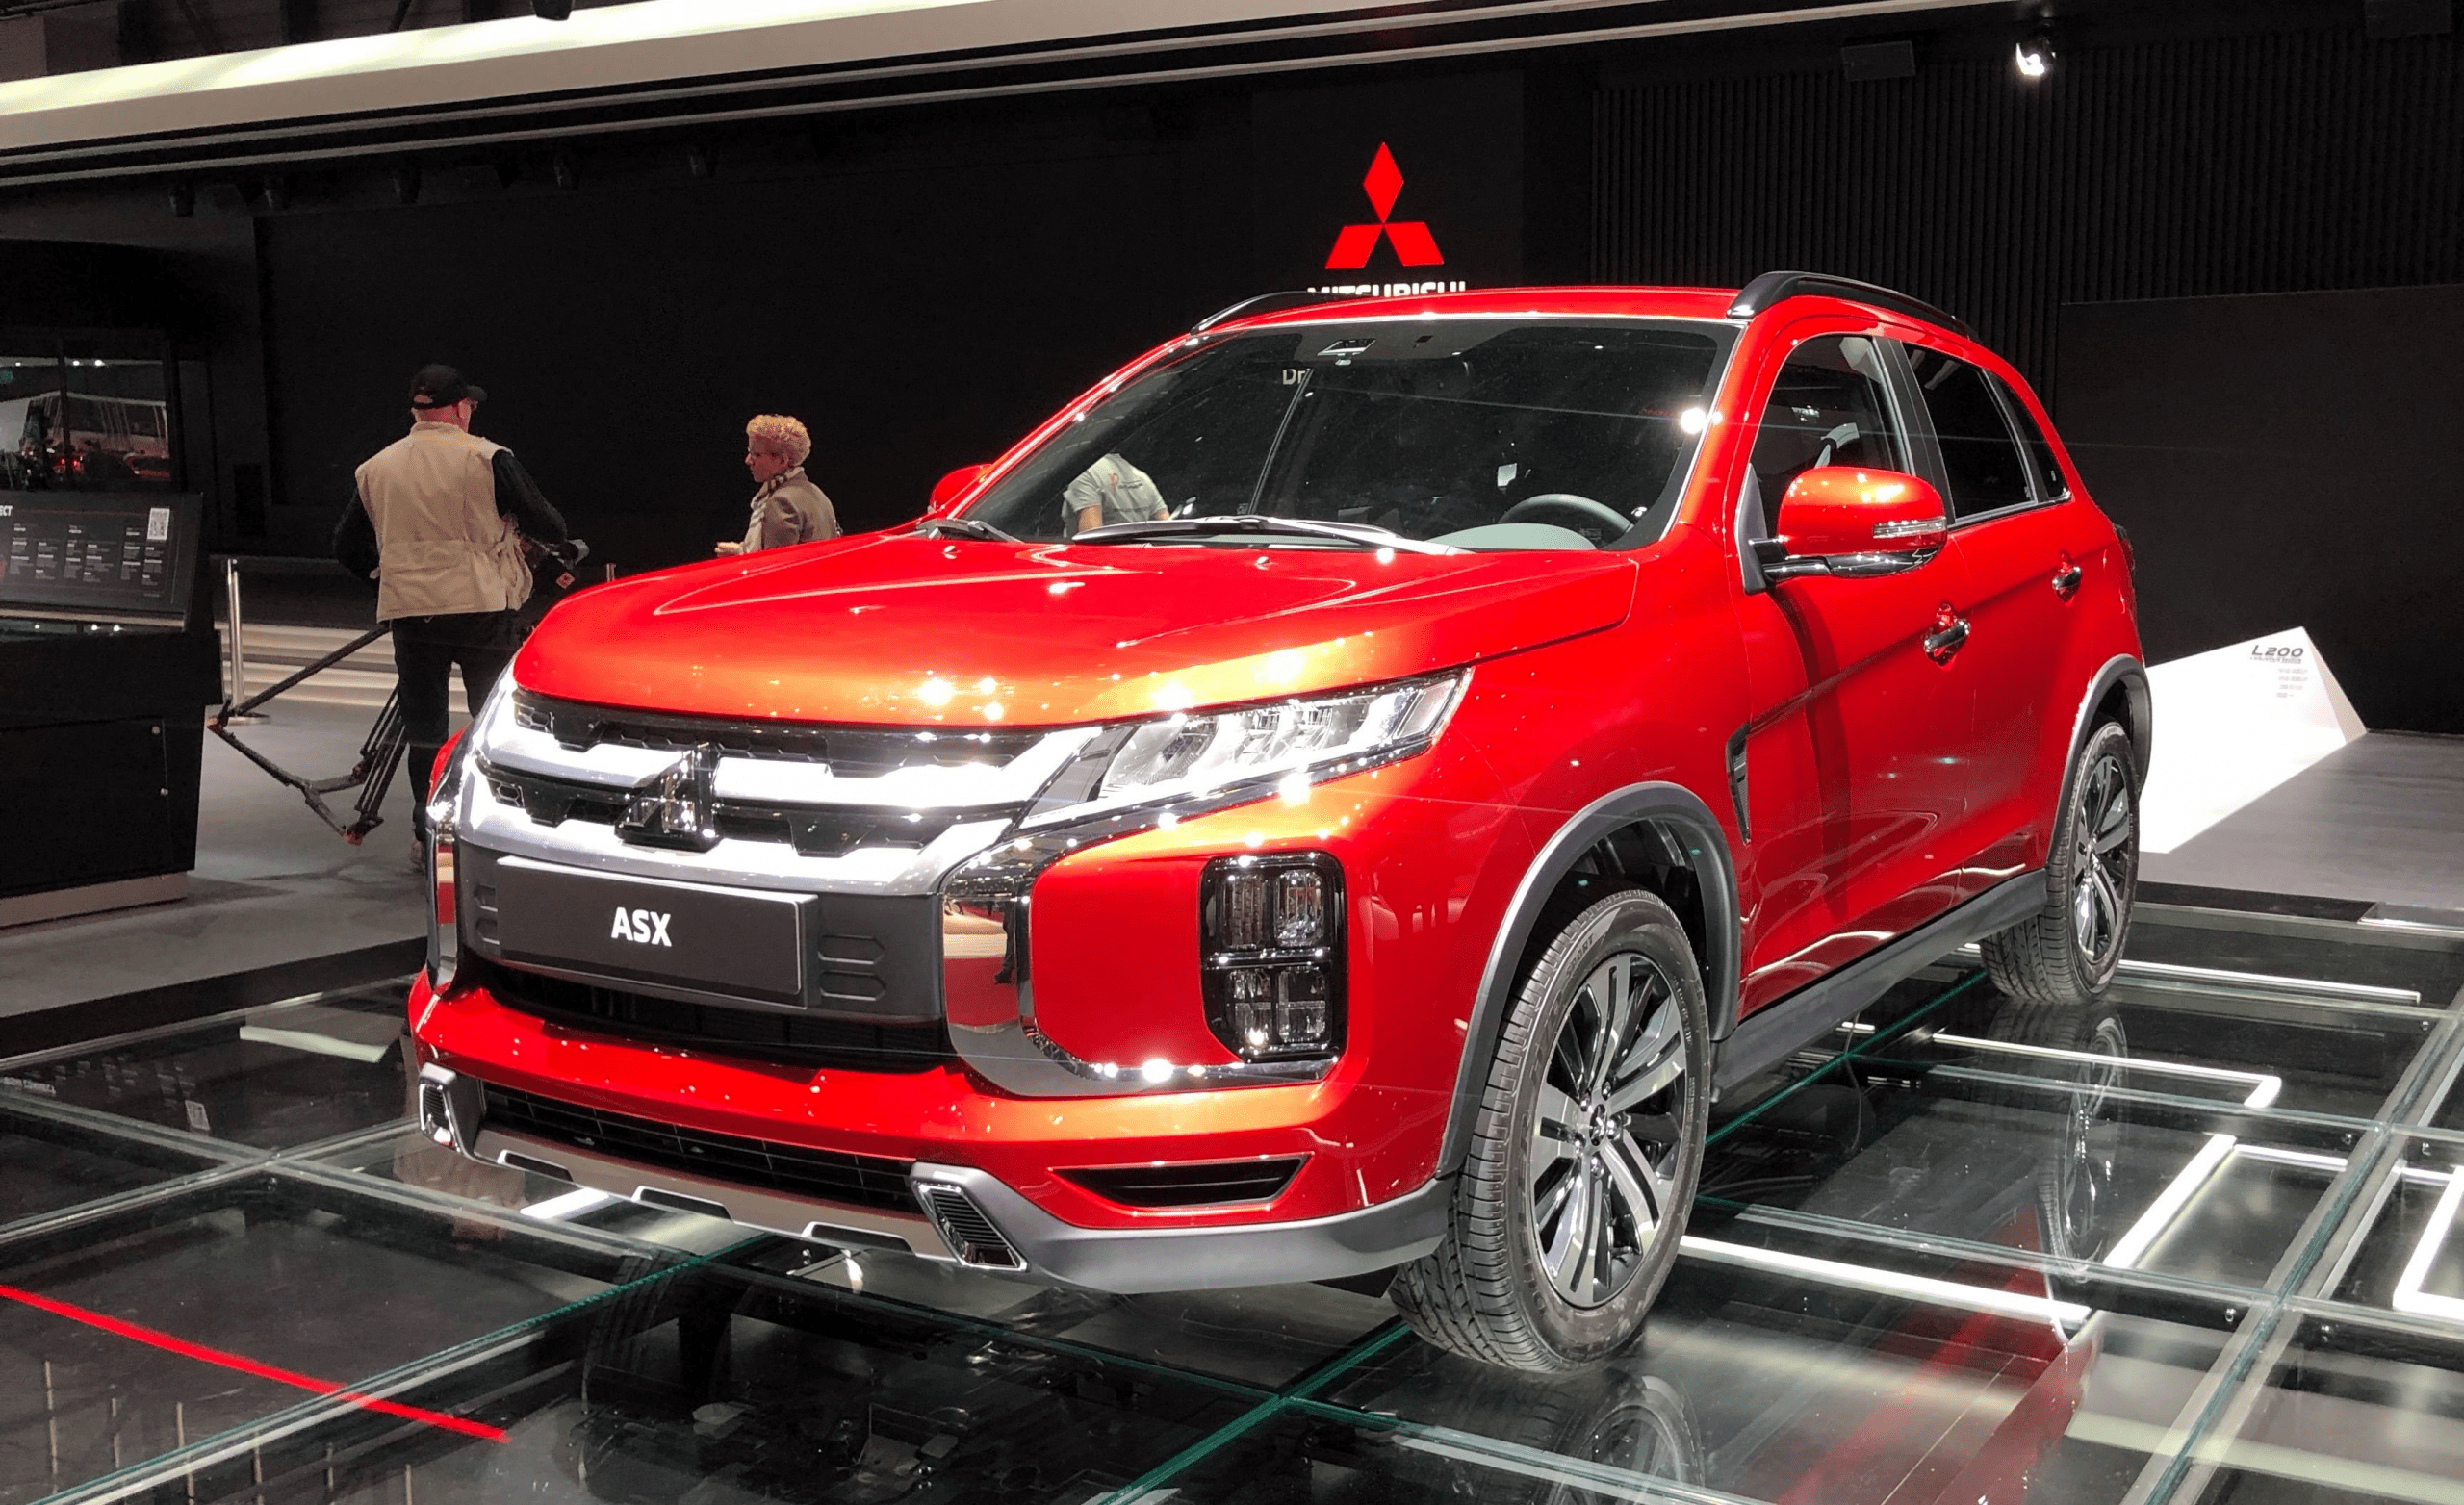 2021 Mitsubishi Asx Concept And Review